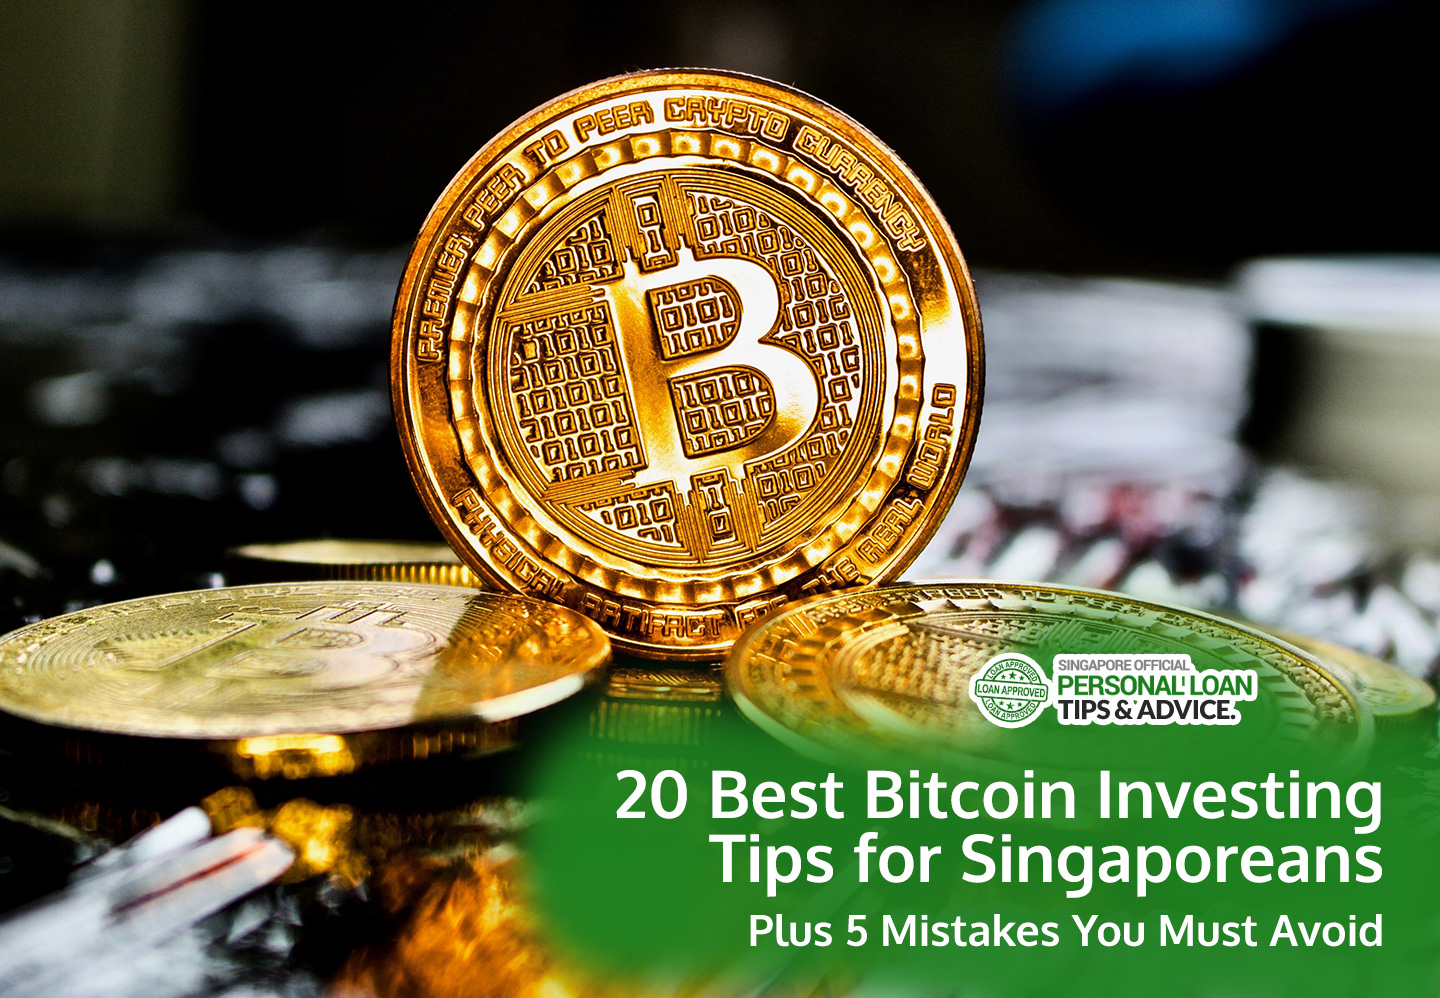 20 Best Bitcoin Investing Tips for Singaporeans: Plus 5 Mistakes You Must Avoid (2019 Update)